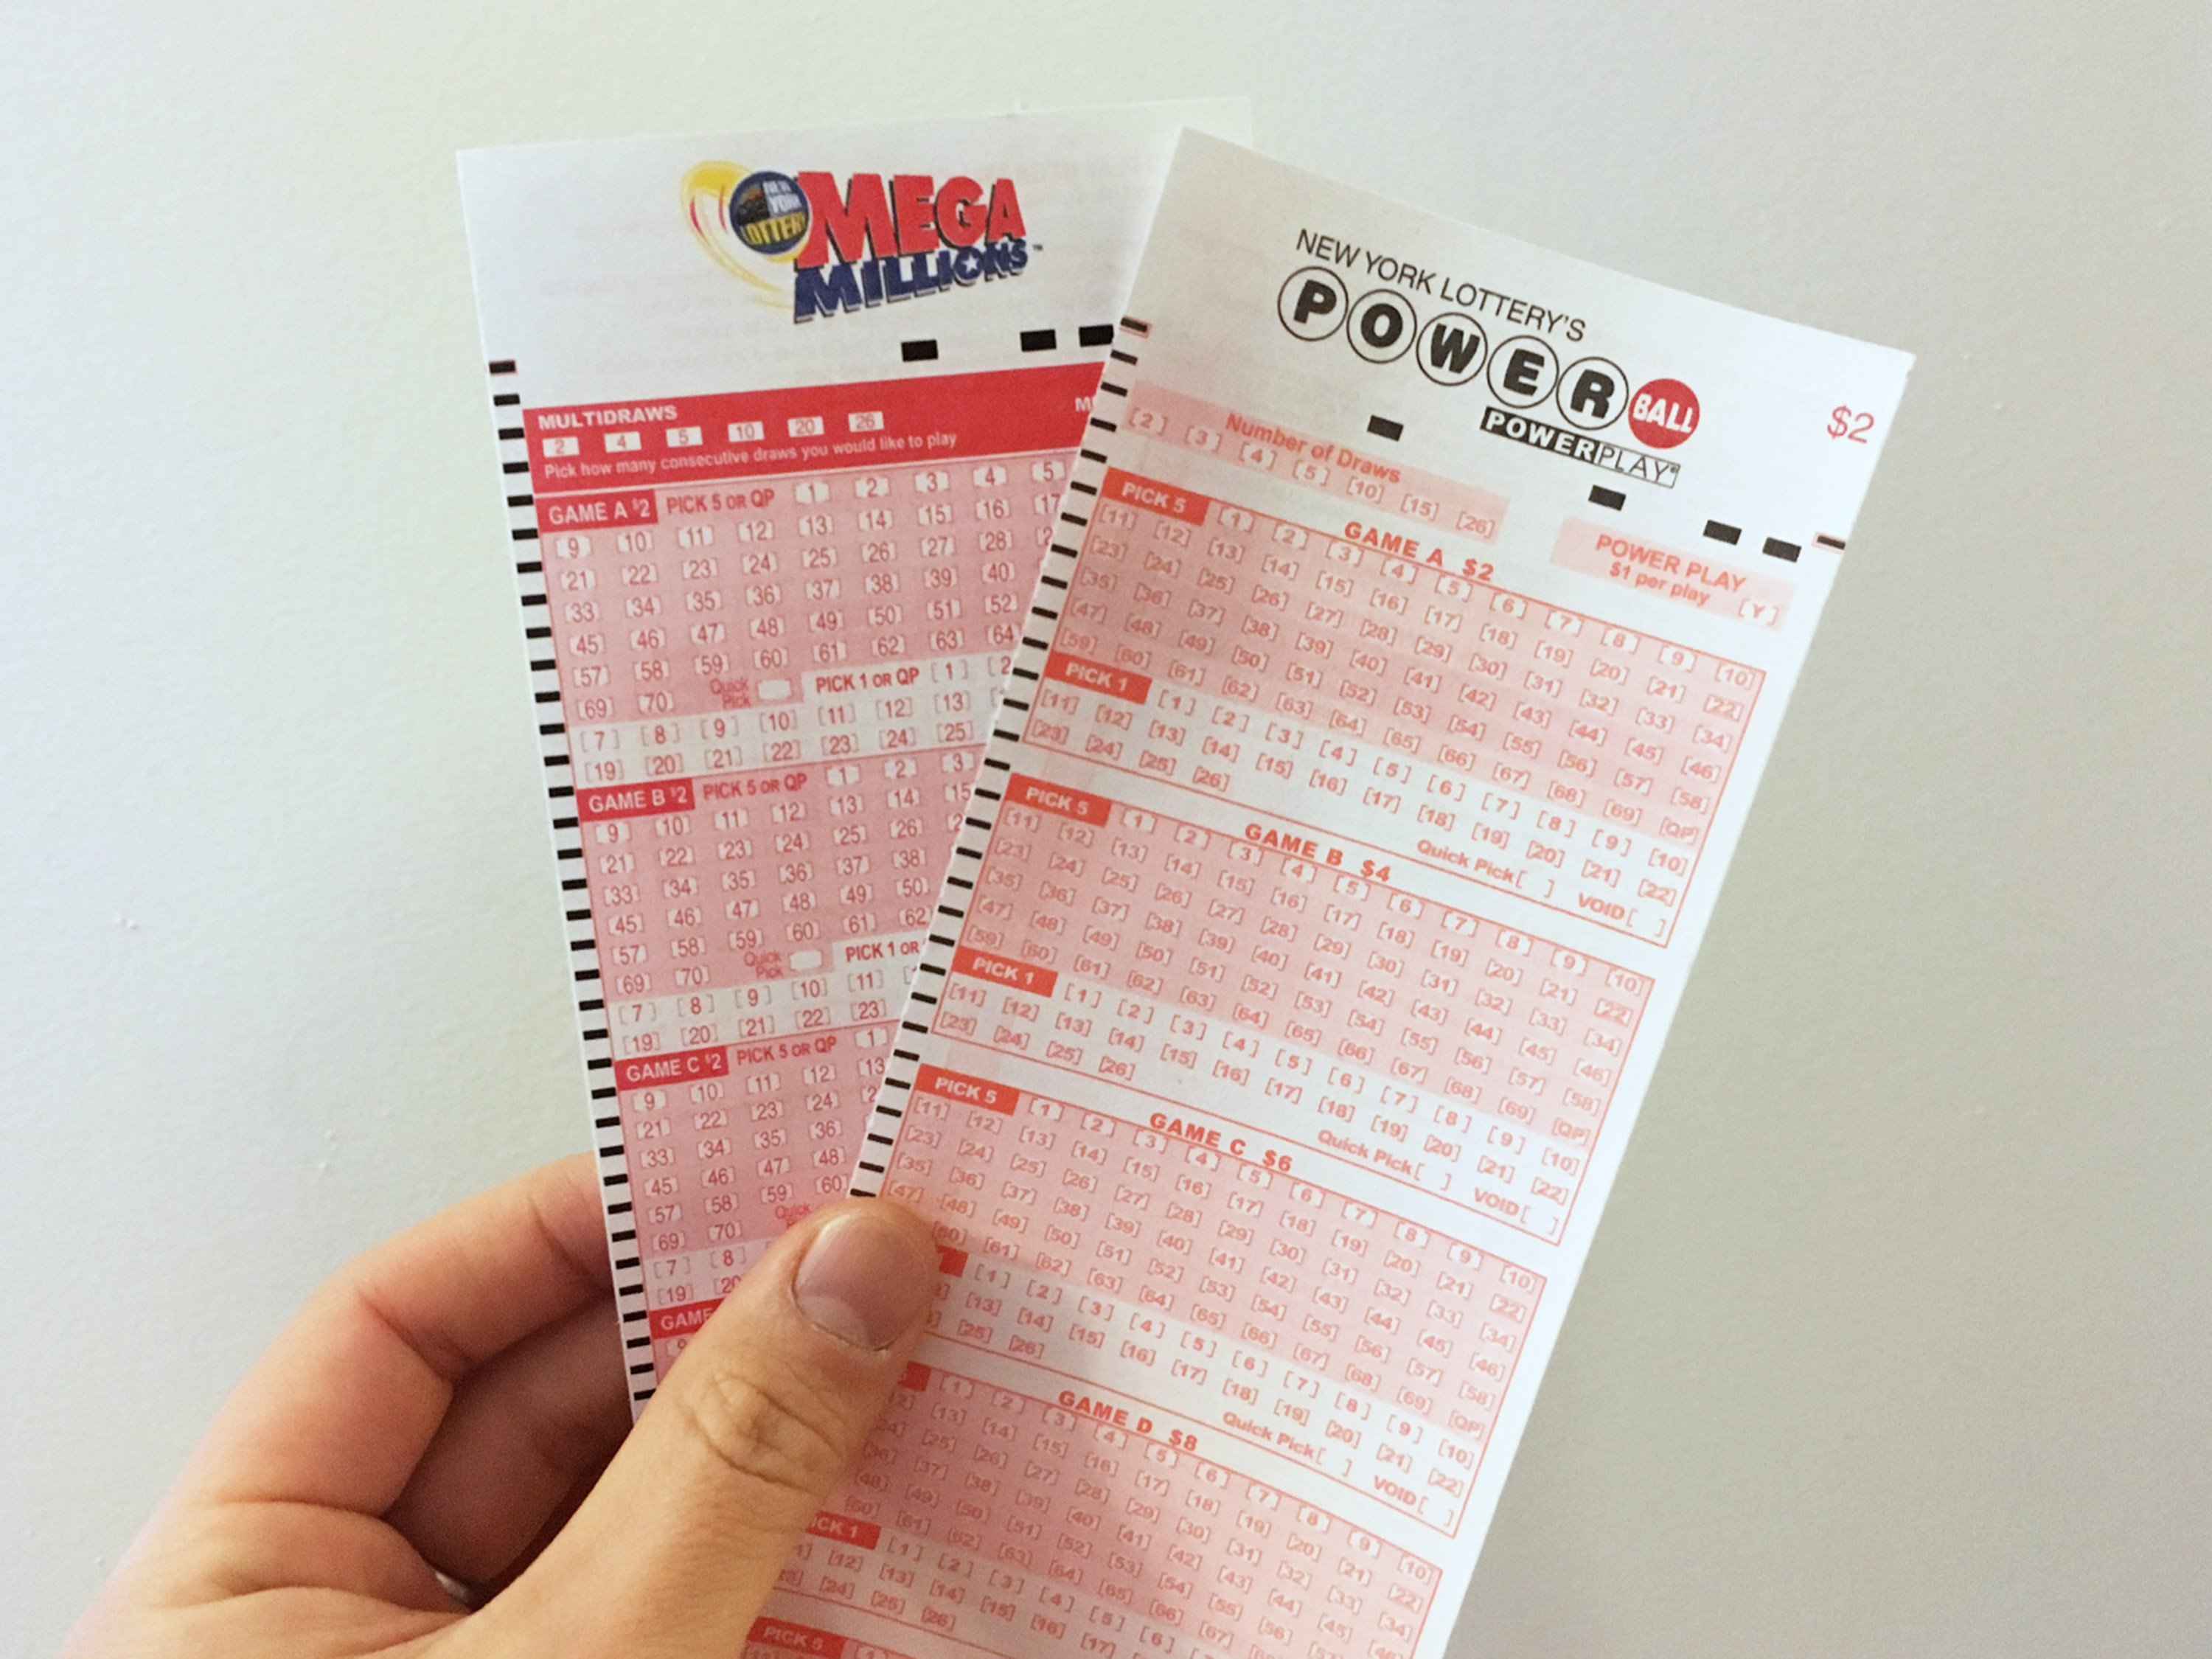 Big weekend for lottery jackpots